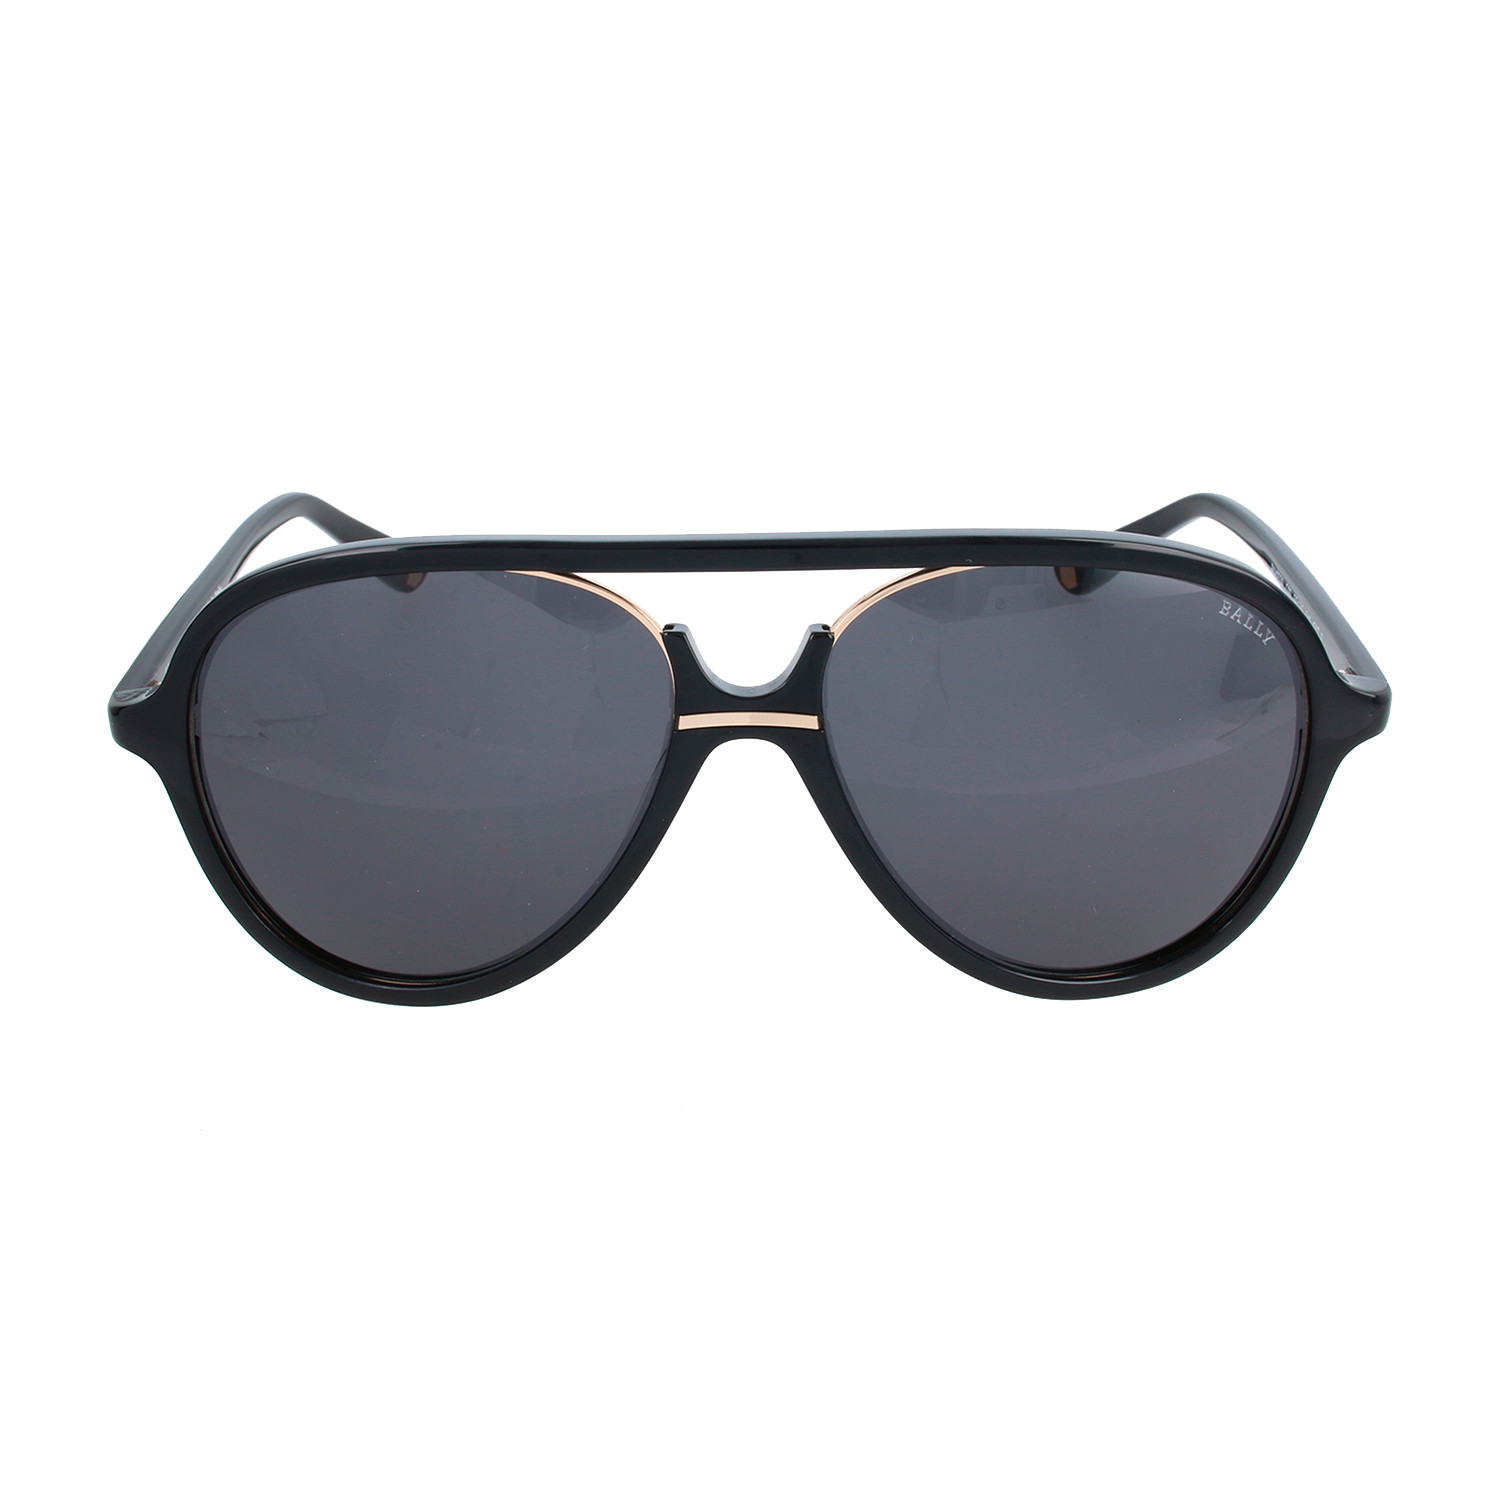 0bc09e072a BY4053A00 Men's Sunglasses // Black - Bally™ - Touch of Modern